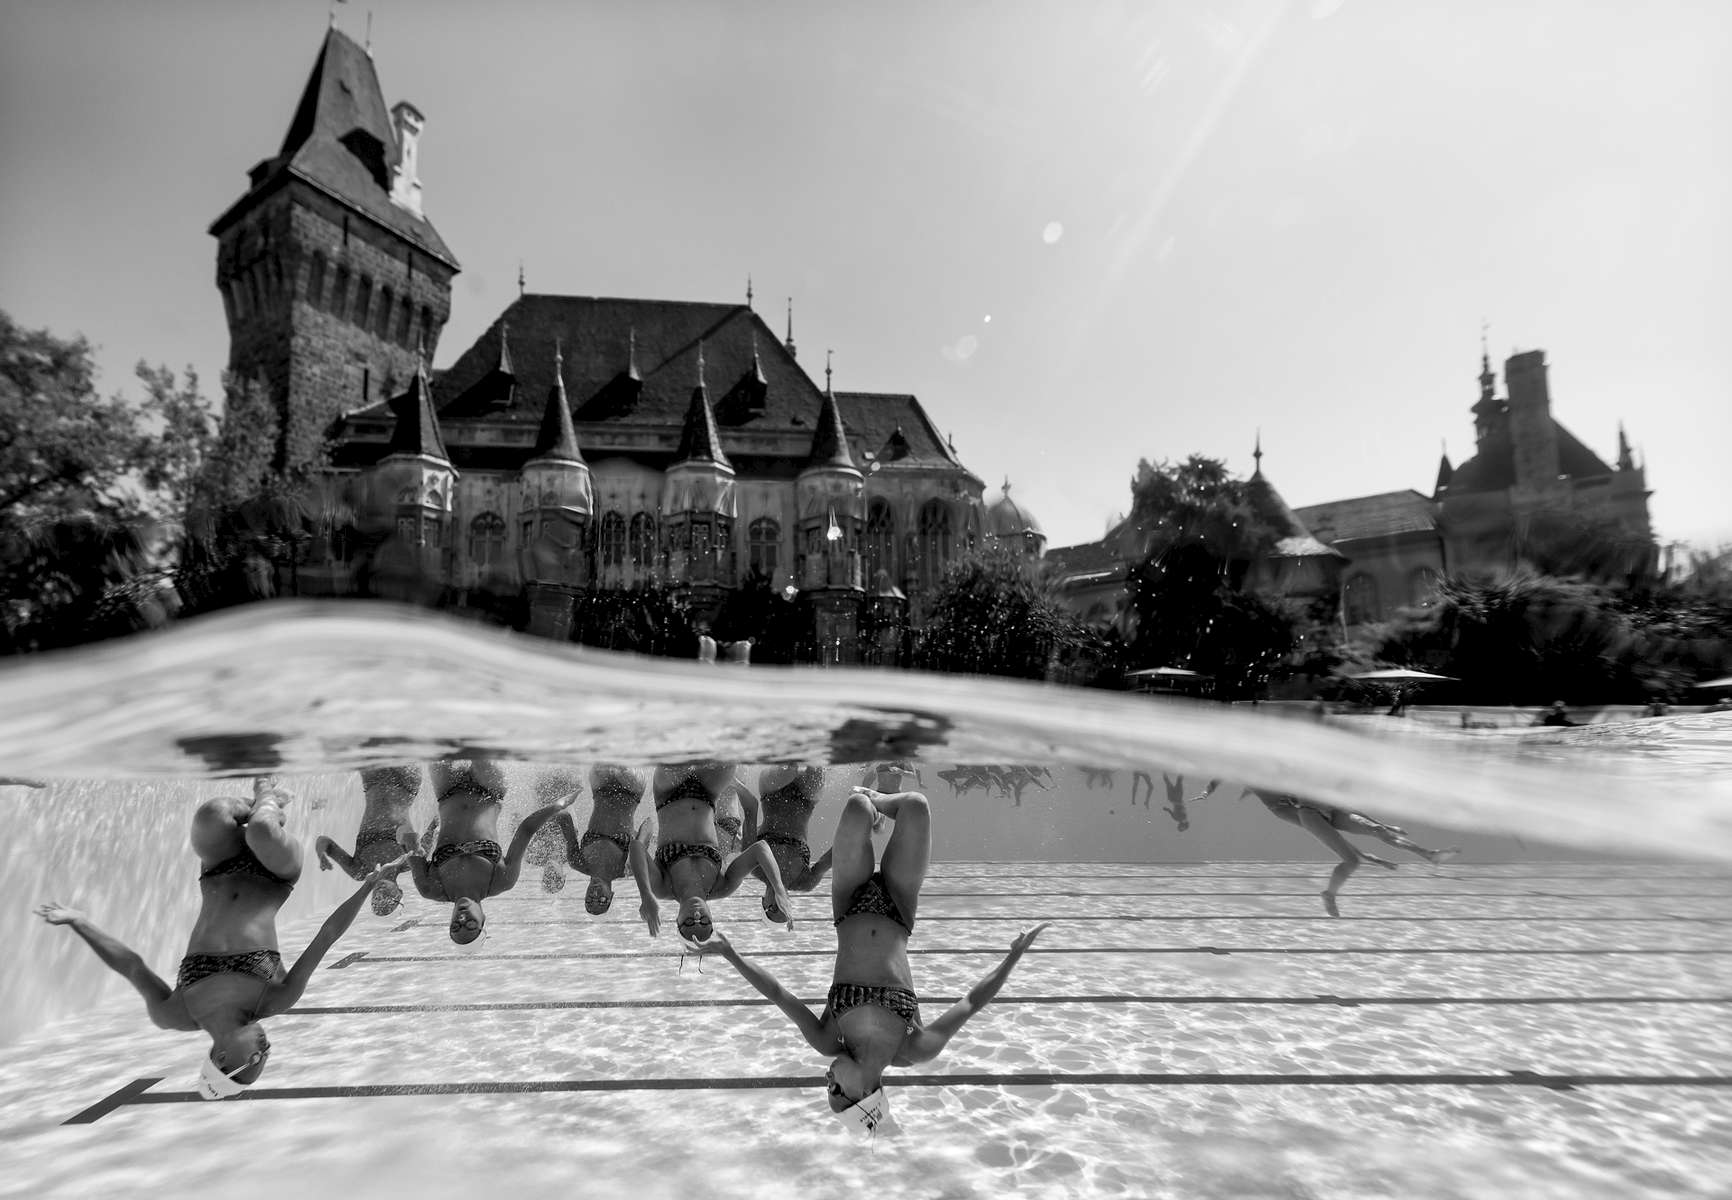 The Synchronised Swimming Team of France trains in front of the Vajdahunyad Castle during day 4 of the Budapest 2017 FINA World Championships on July 17, 2017 in Budapest, Hungary.